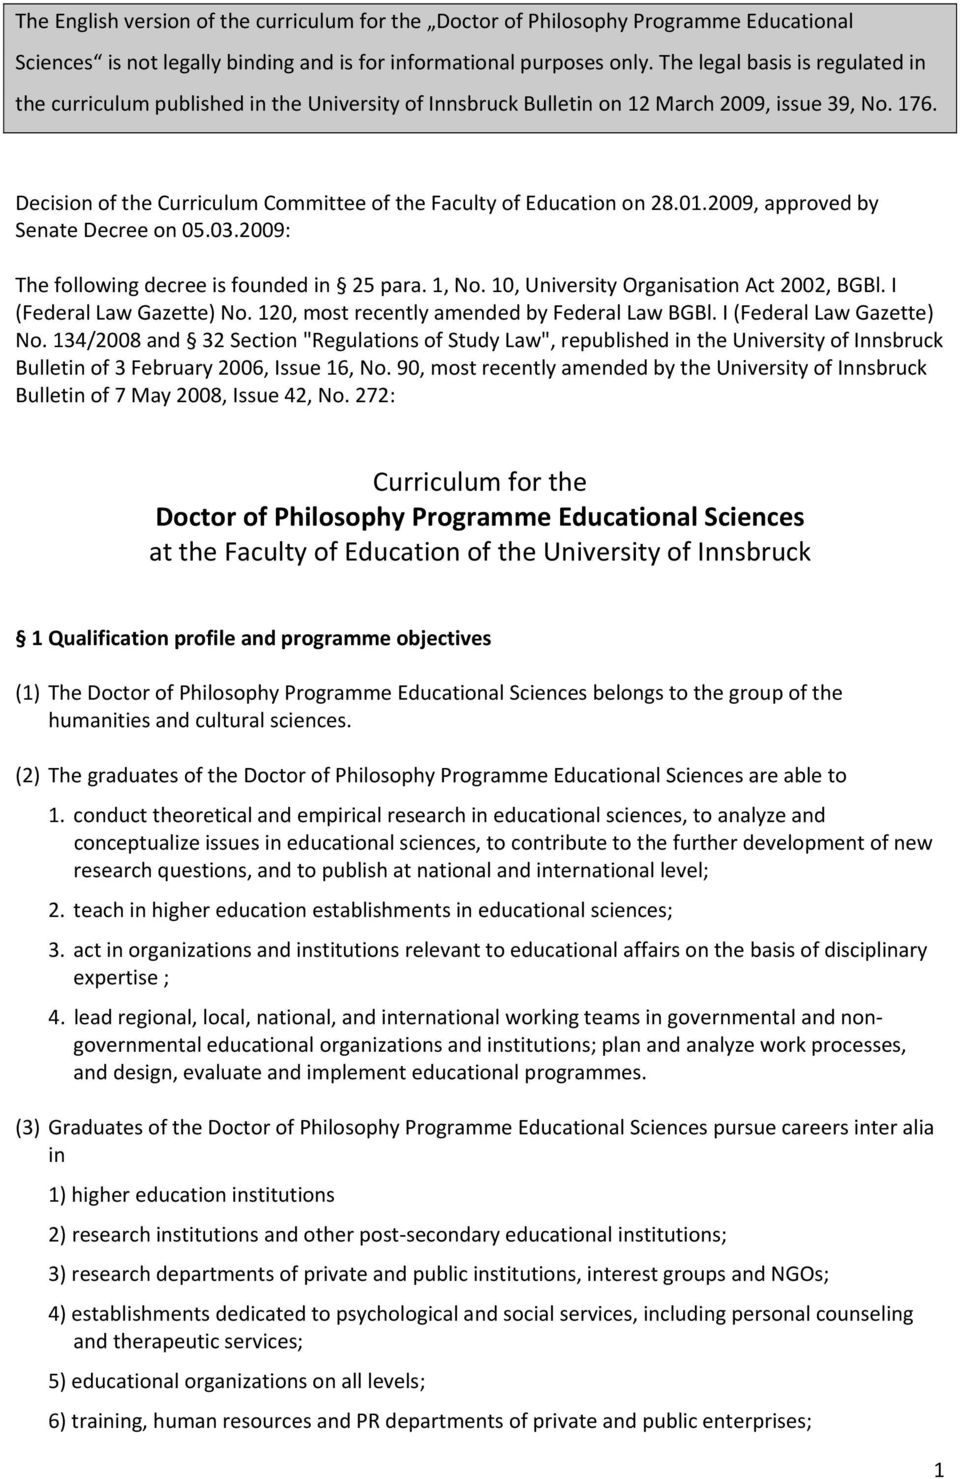 Decision of the Curriculum Committee of the Faculty of Education on 28.01.2009, approved by Senate Decree on 05.03.2009: The following decree is founded in 25 para. 1, No.